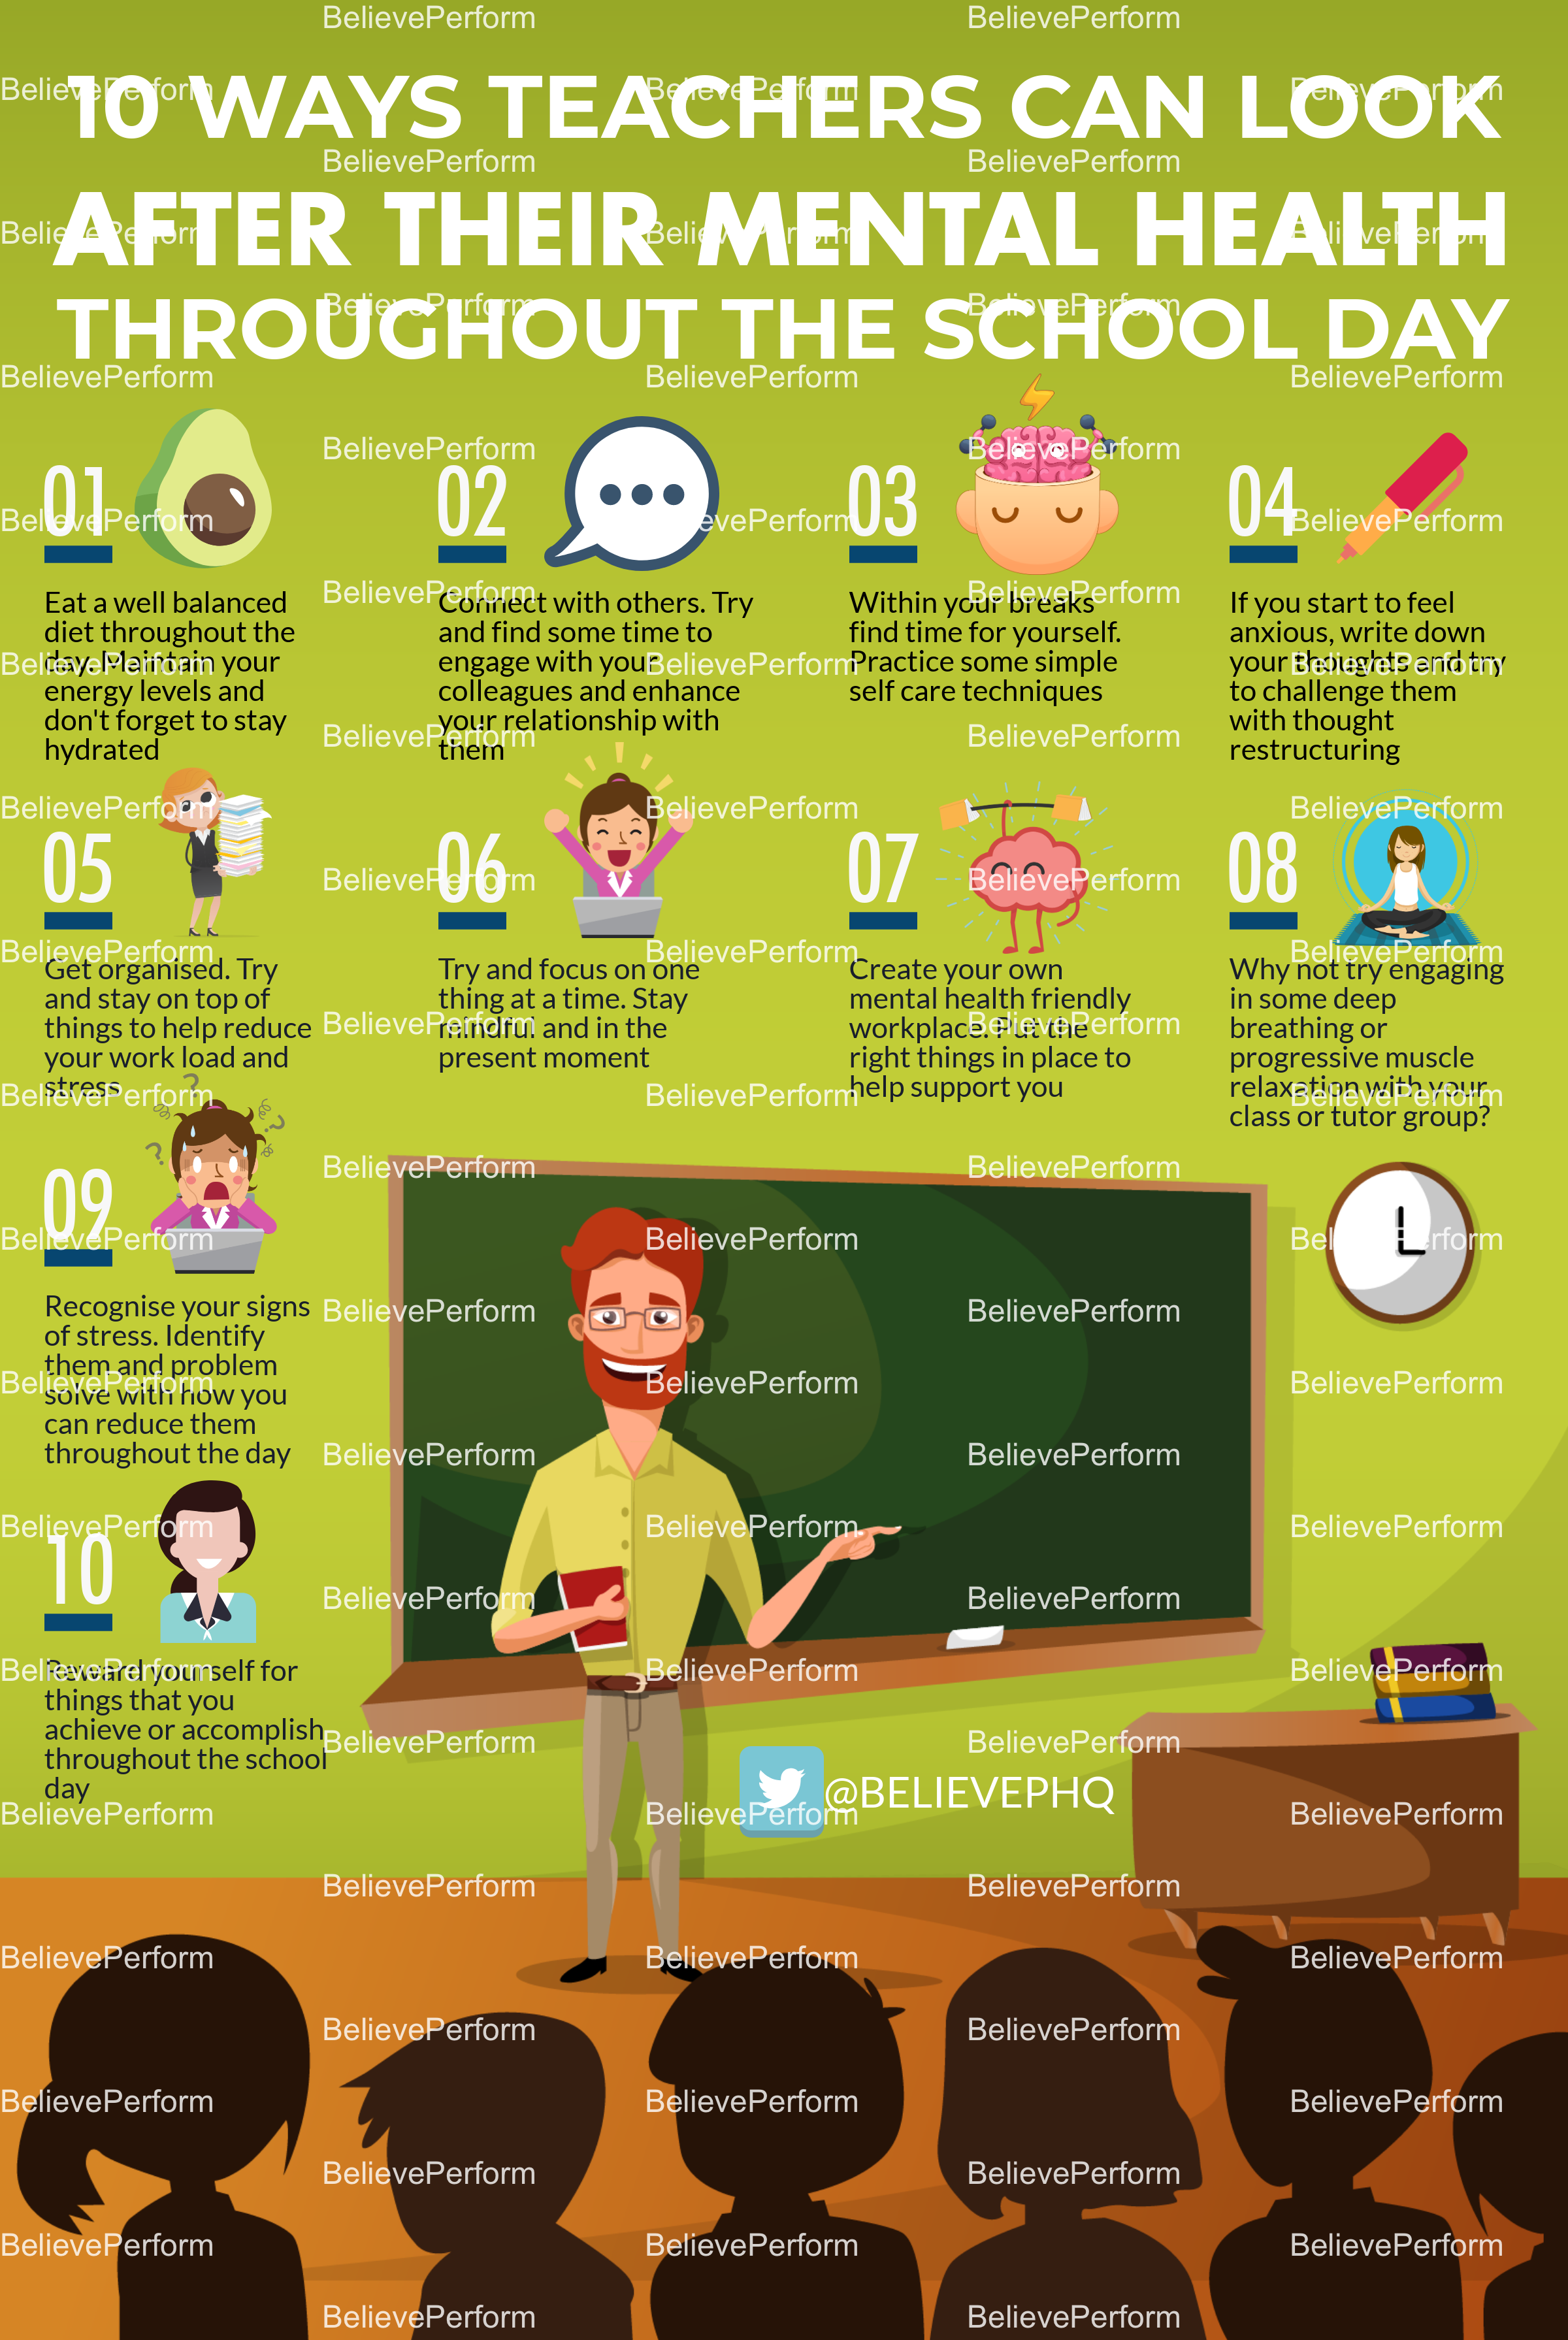 10 ways teachers can look after their mental health throughout the school day